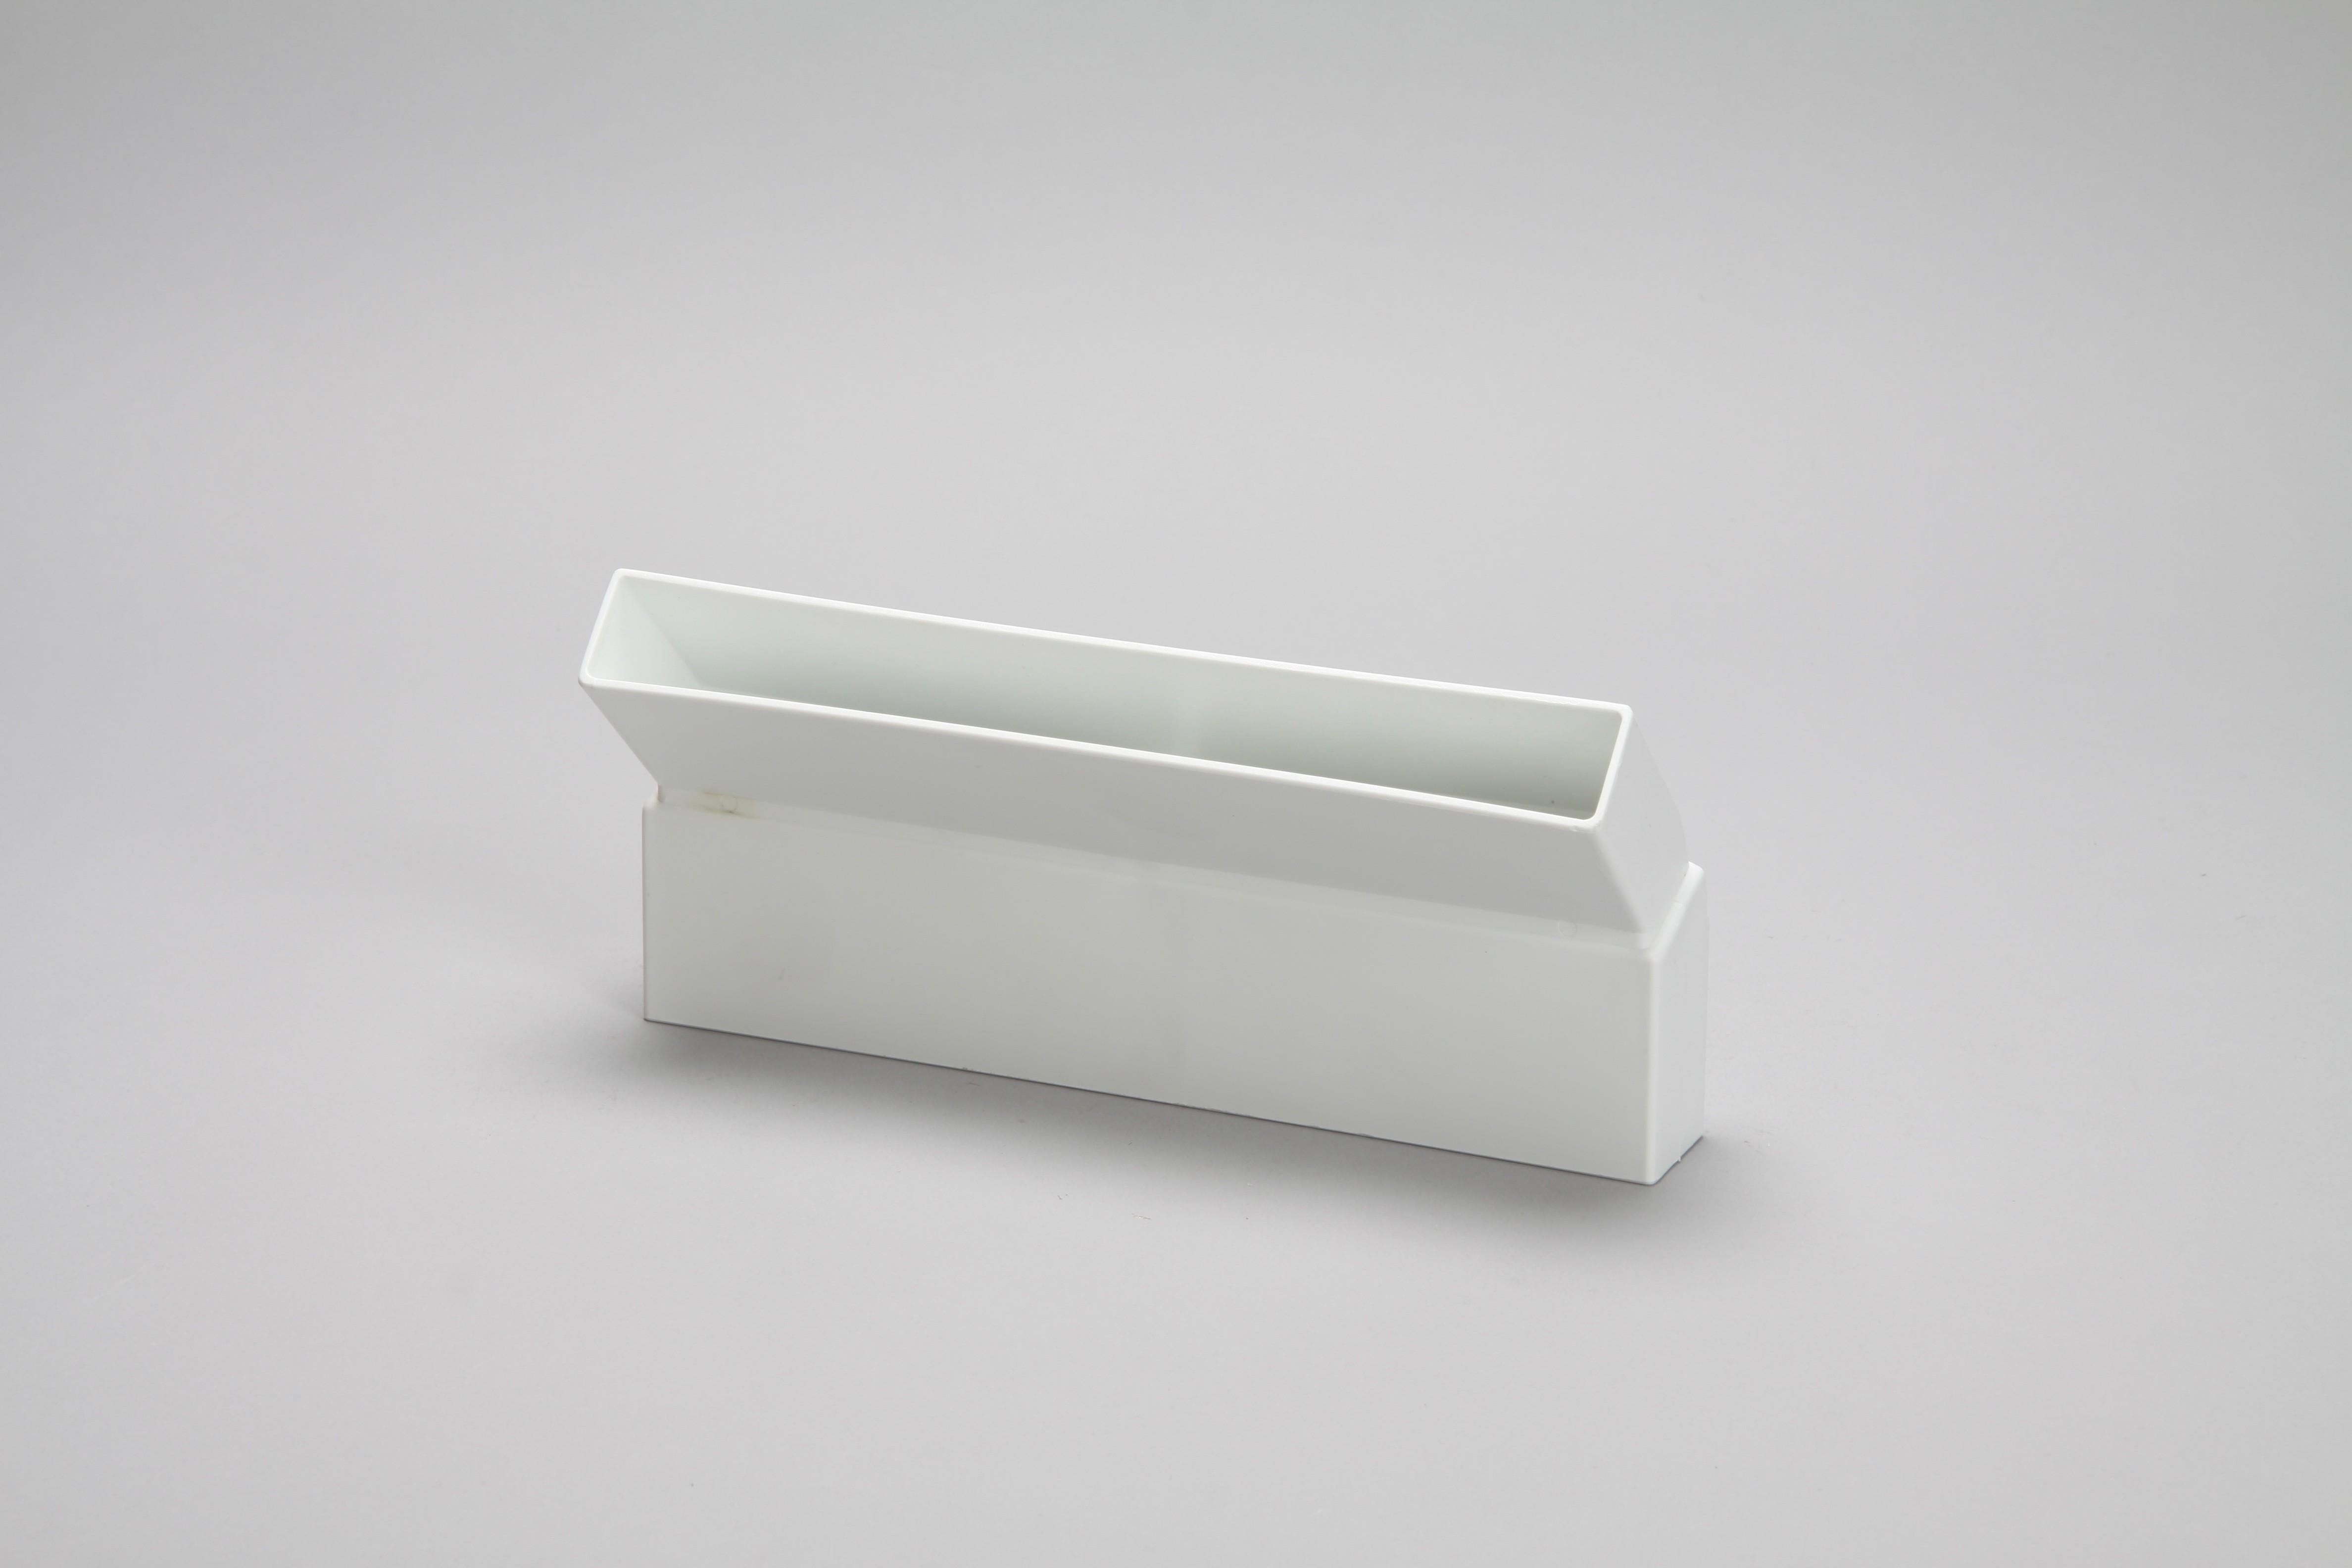 Vertical 45 degree bend 234mm x 29mm ducting